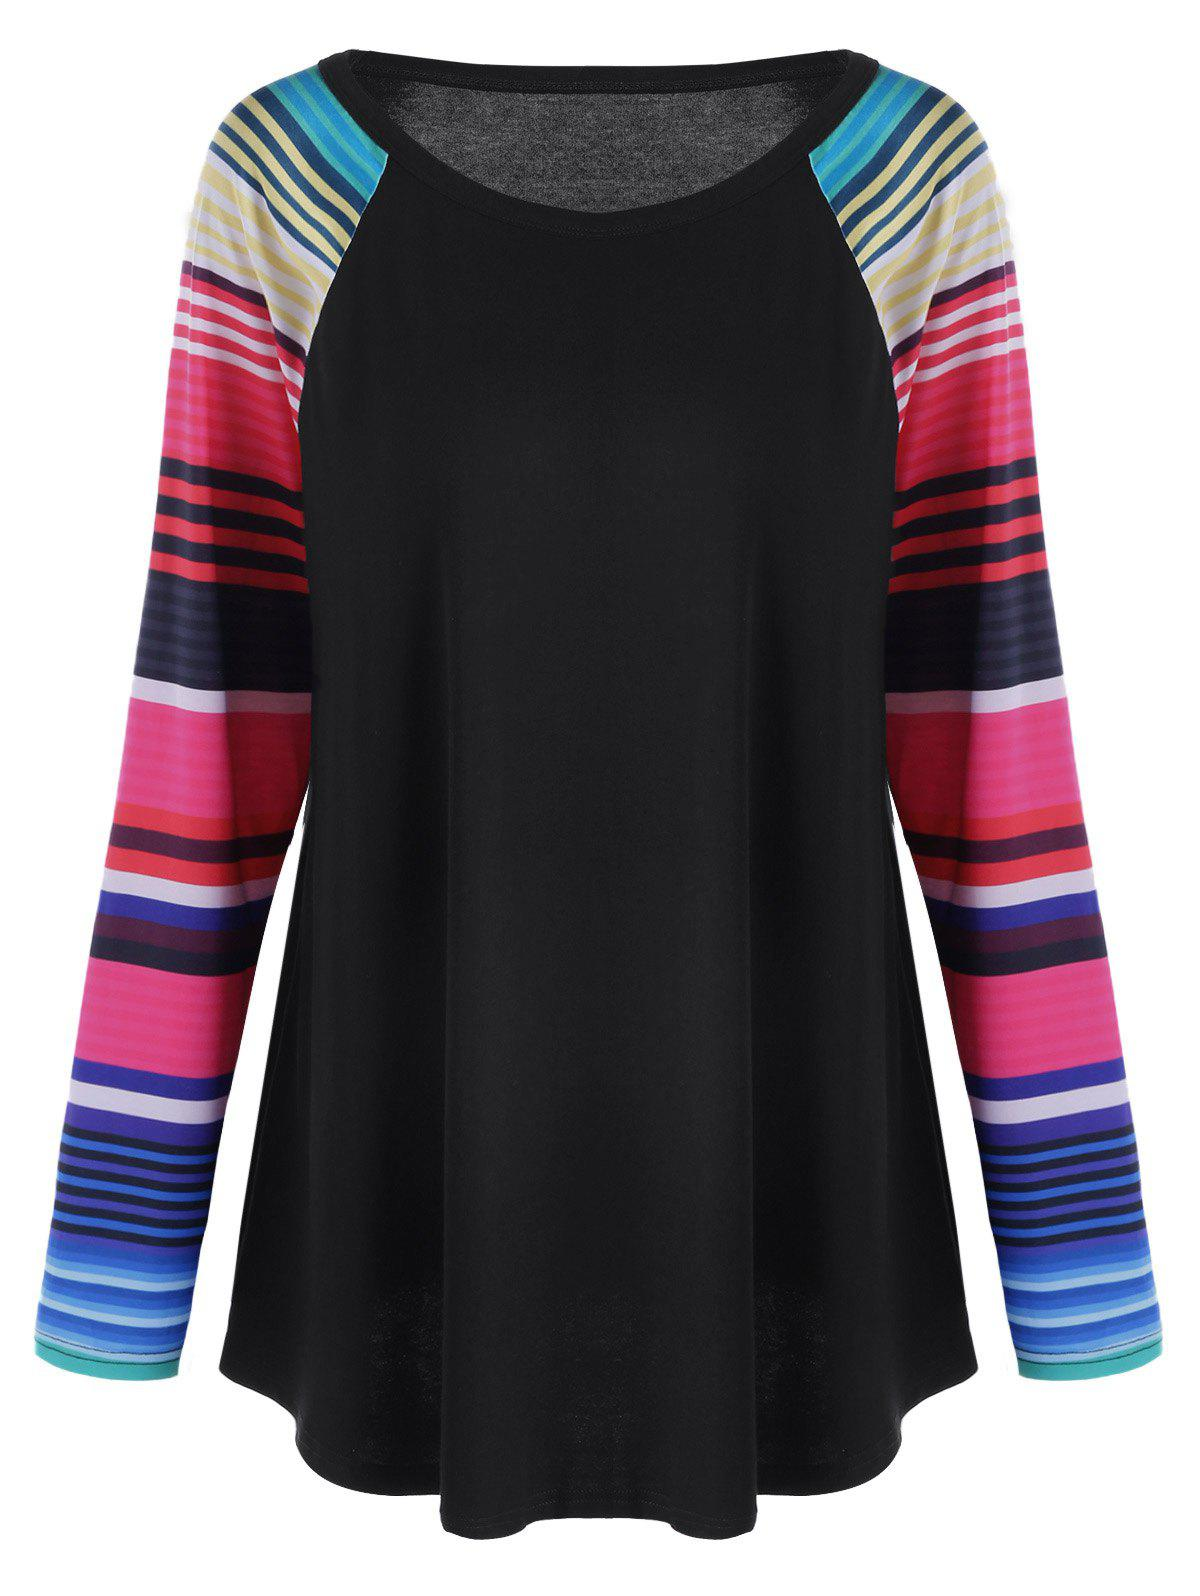 Plus Size Striped Raglan Sleeves TopWOMEN<br><br>Size: XL; Color: STRIPE; Material: Cotton,Polyester; Shirt Length: Regular; Sleeve Length: Full; Collar: Round Neck; Style: Casual; Season: Fall,Spring; Sleeve Type: Raglan Sleeve; Pattern Type: Striped; Weight: 0.3000kg; Package Contents: 1 x T-shirt;